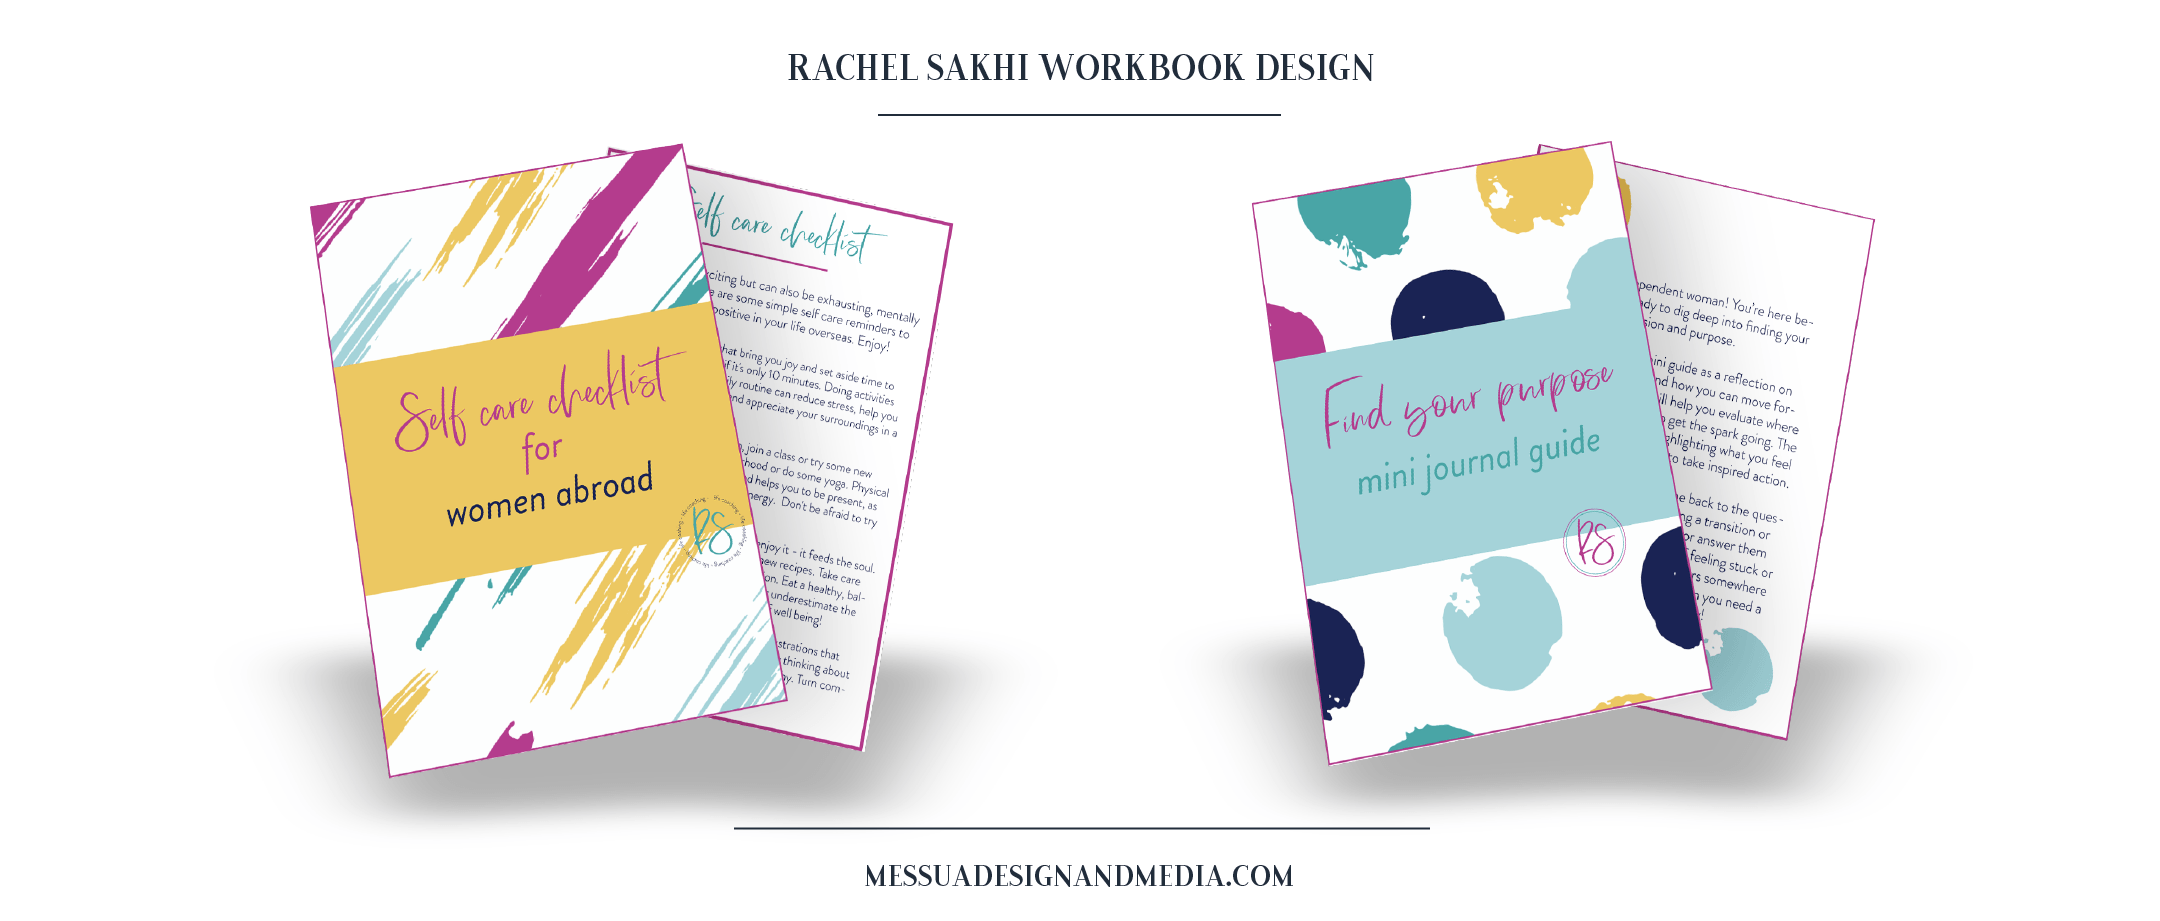 Rachel workbook design-8.png